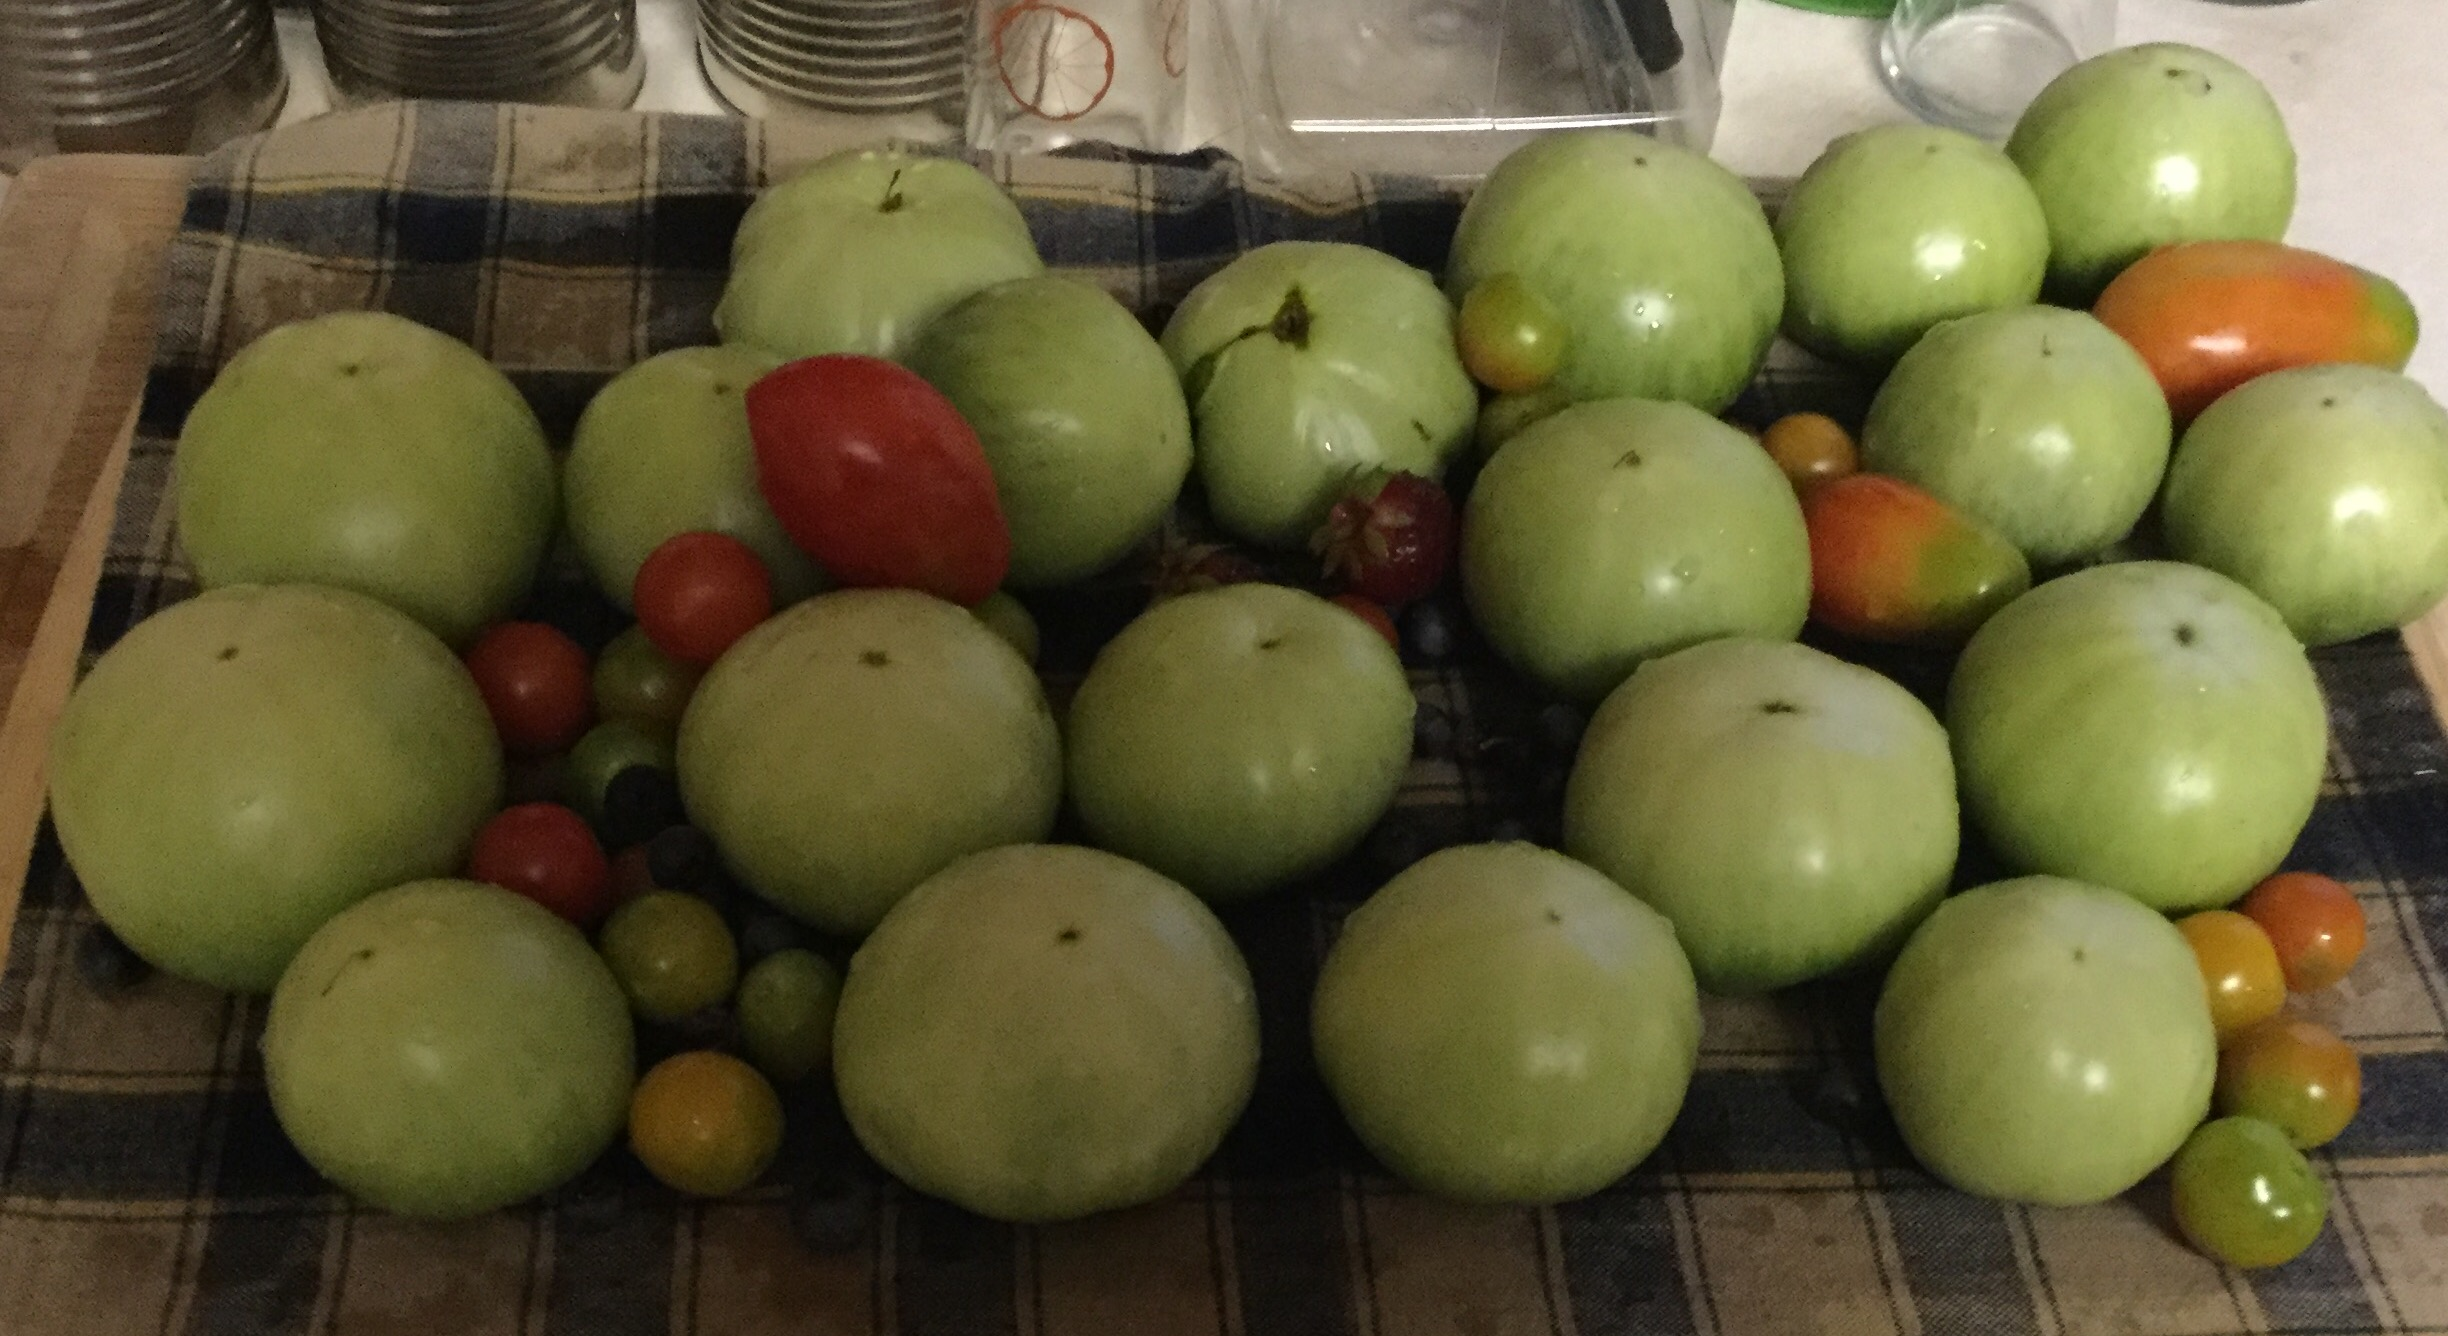 Sunday, July 3, 2016 – Today's Pickings